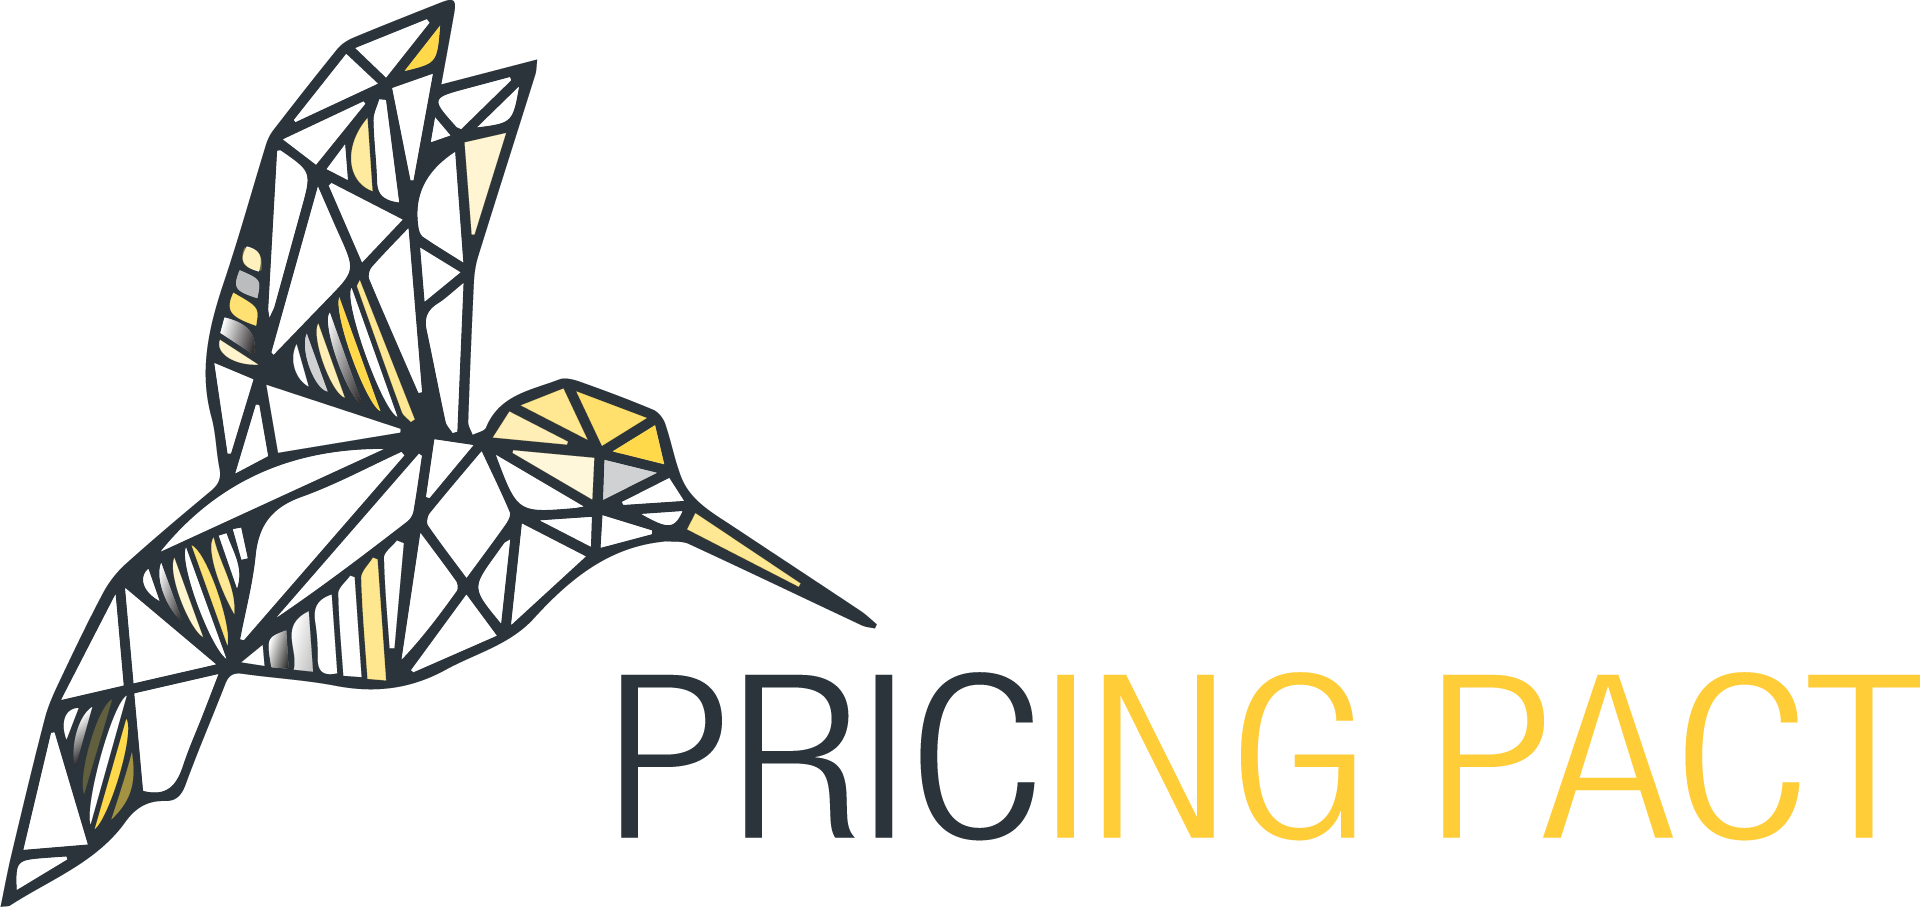 Pricing Pact